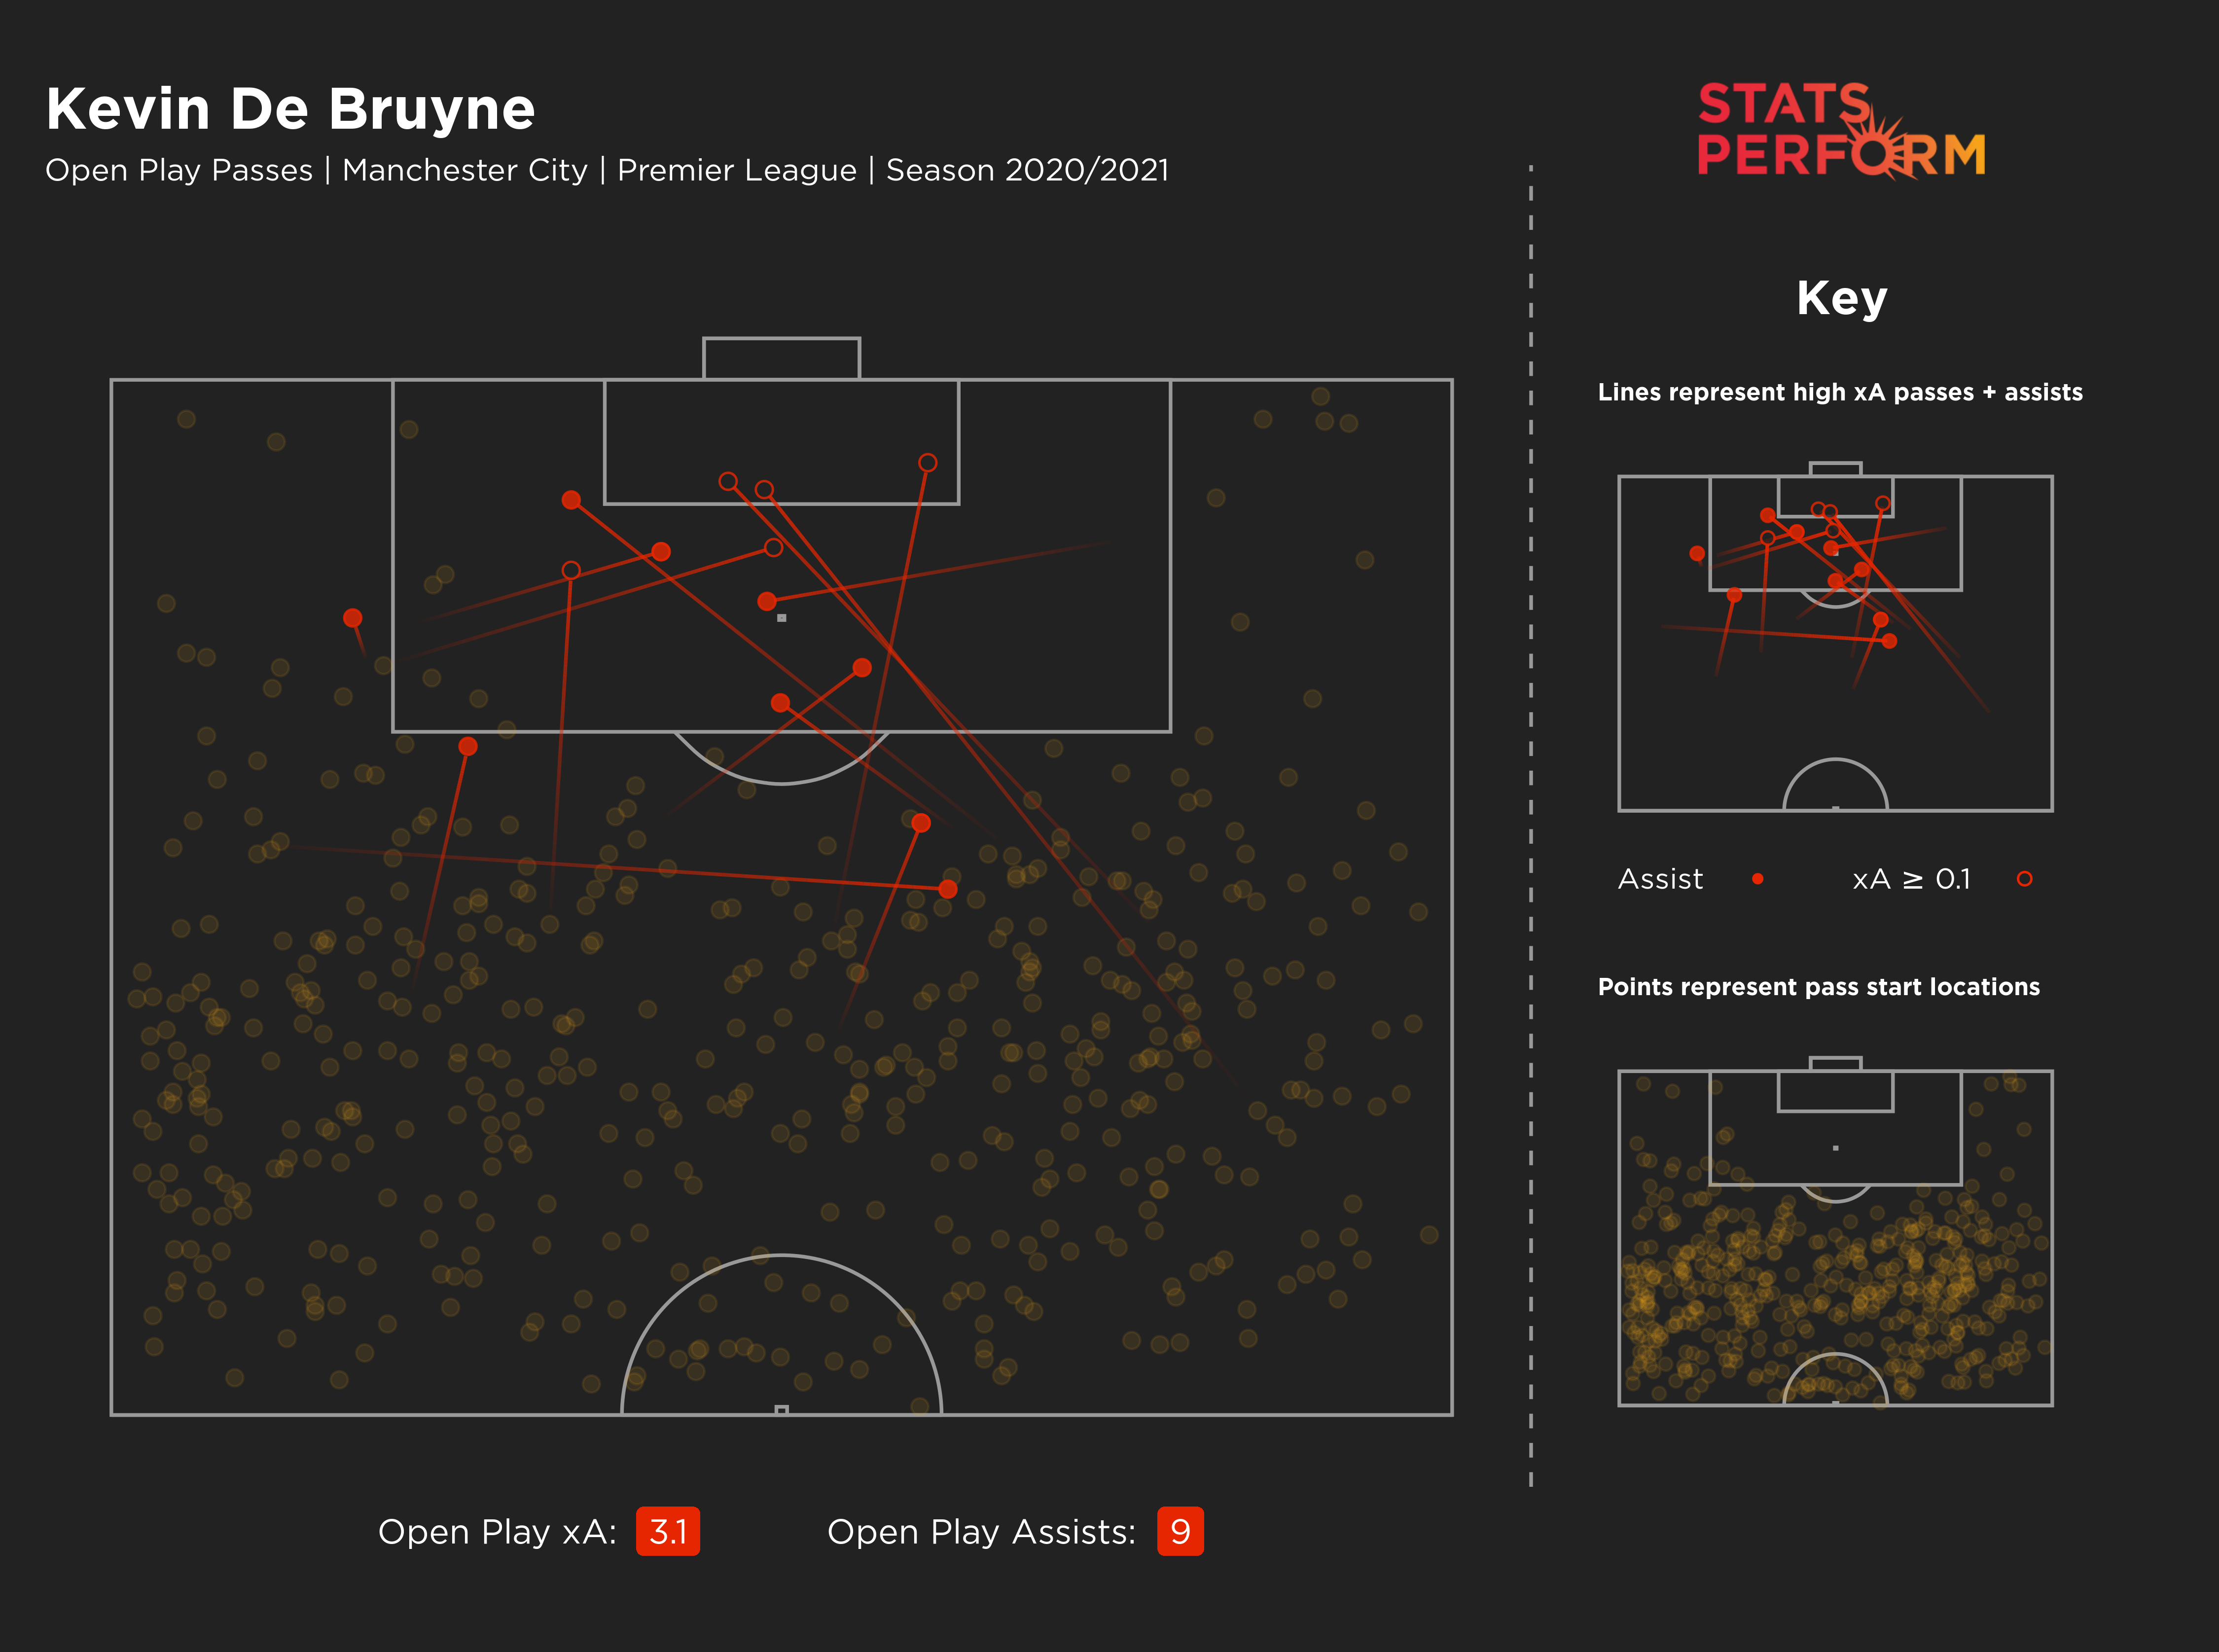 Kevin De Bruyne has again been Manchester City's main creator in 2020-21